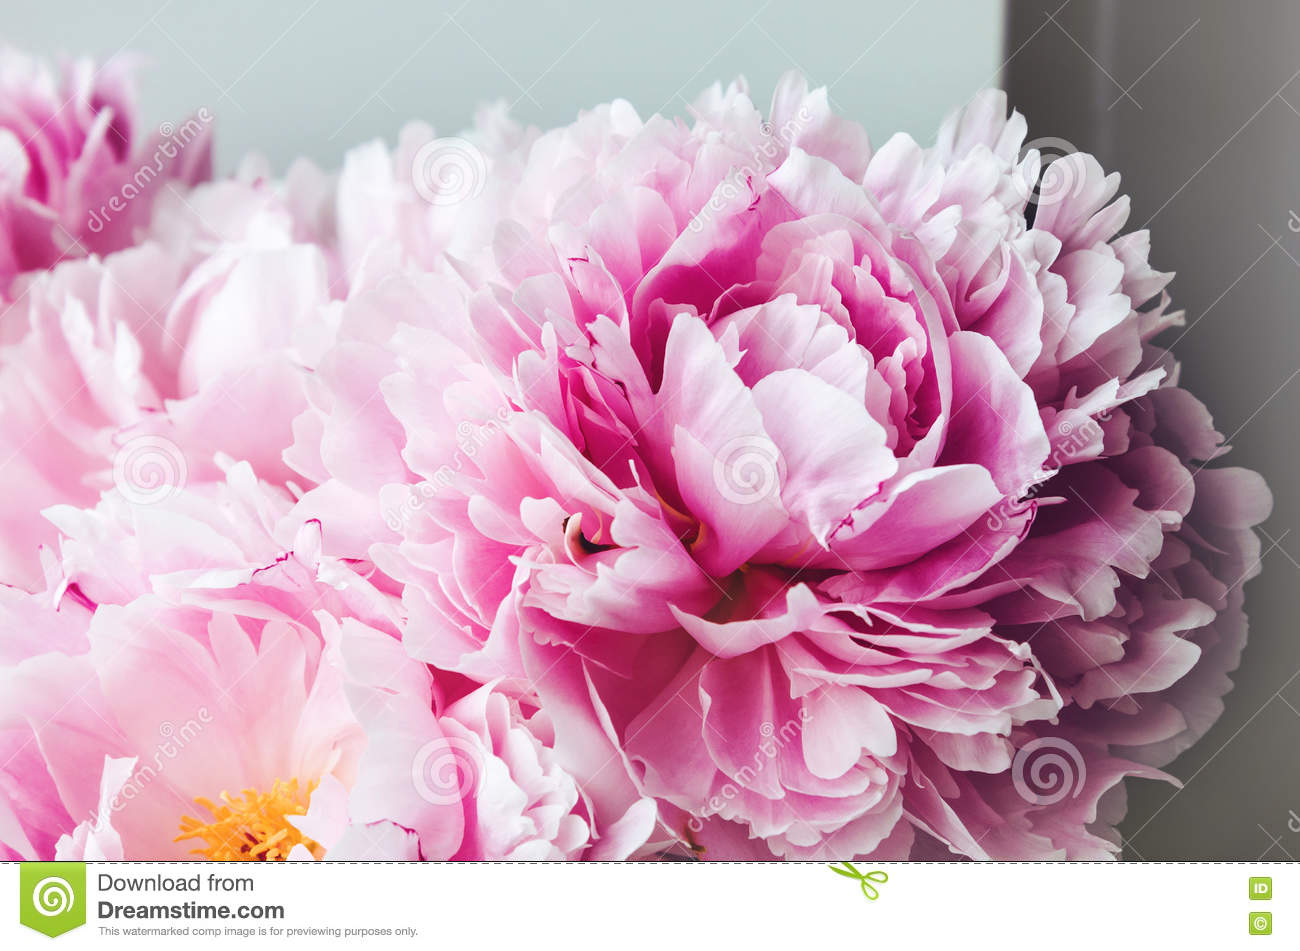 Beauty pink peonies peony roses flower macro. Pastel floral wallpaper, background from flower petals. Holiday wedding concept. Bridal flowers.